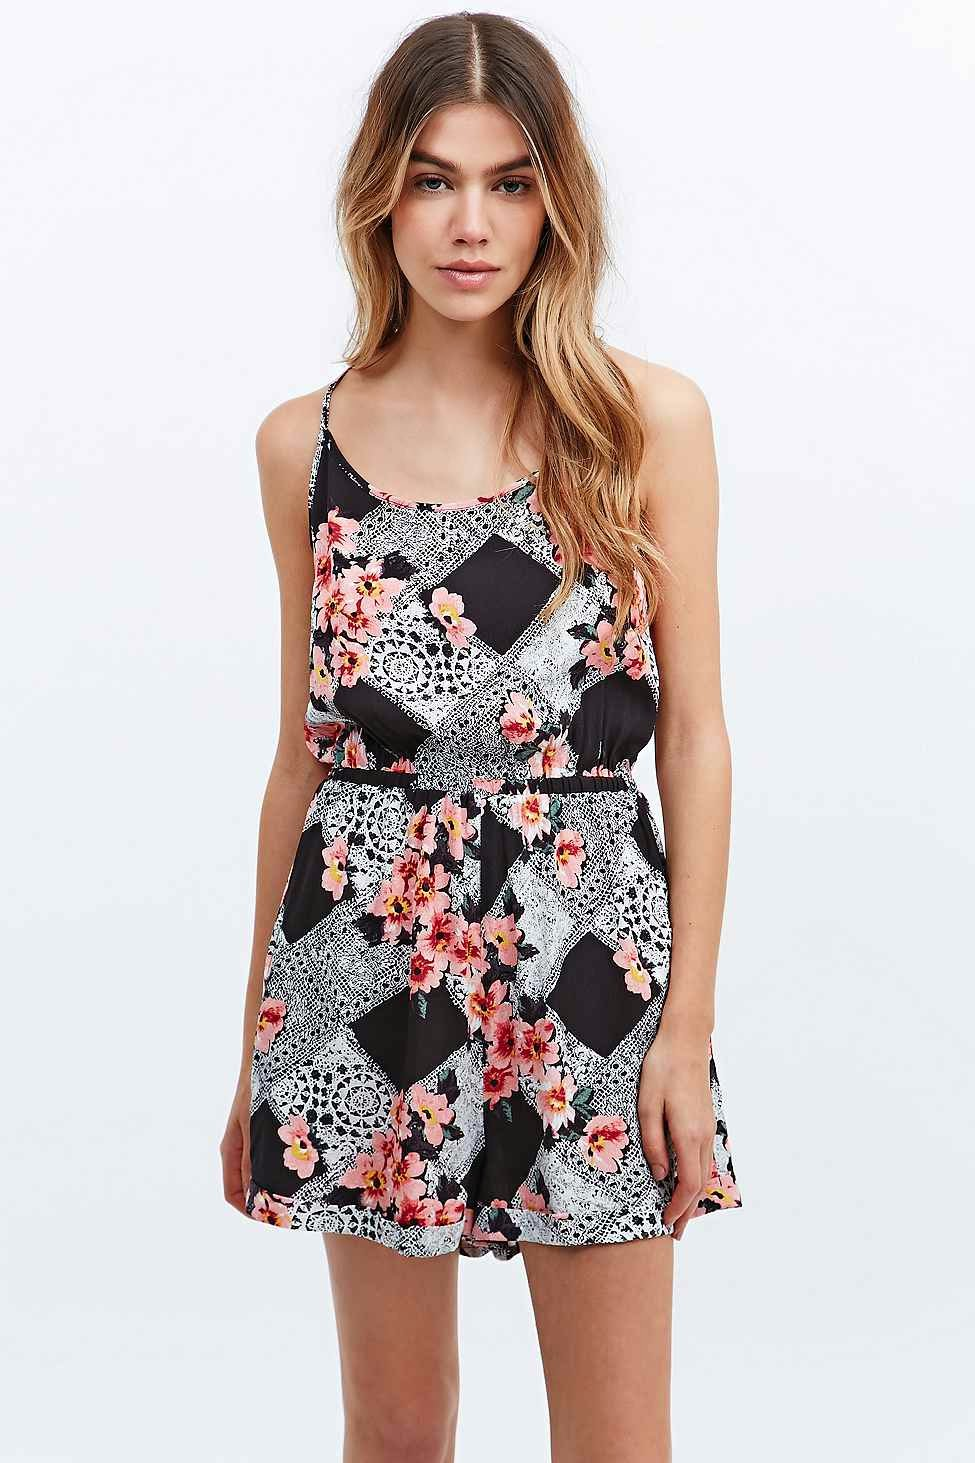 minkpink patterned playsuit